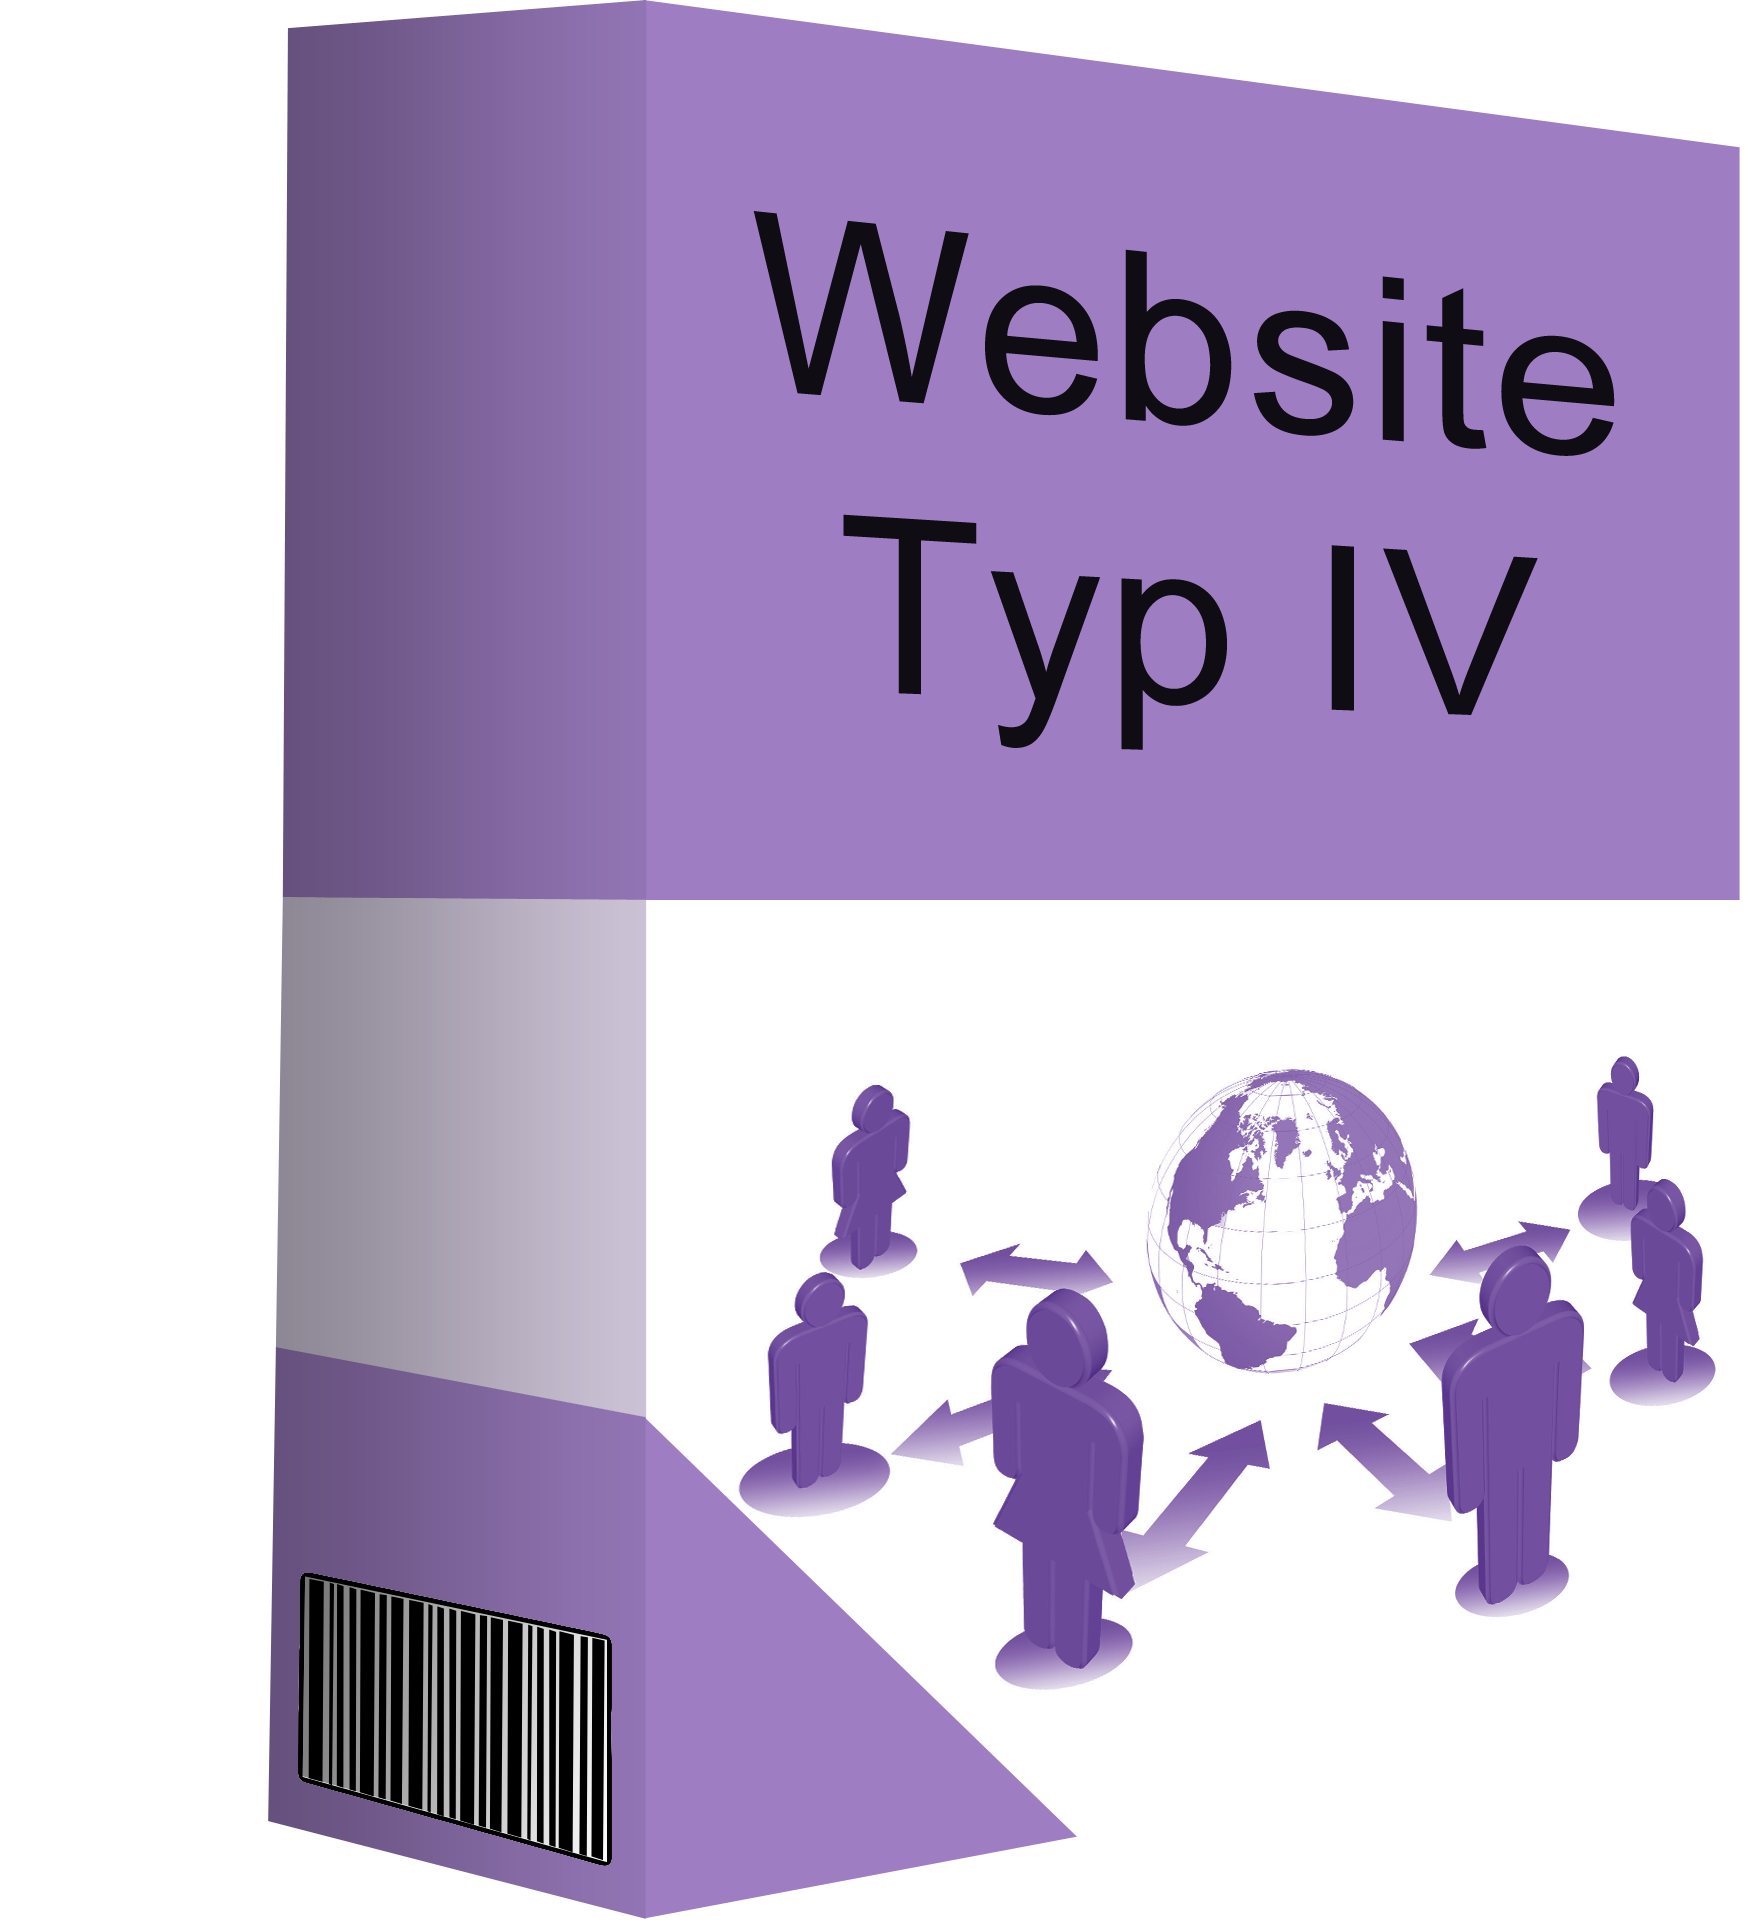 Website Typ IV